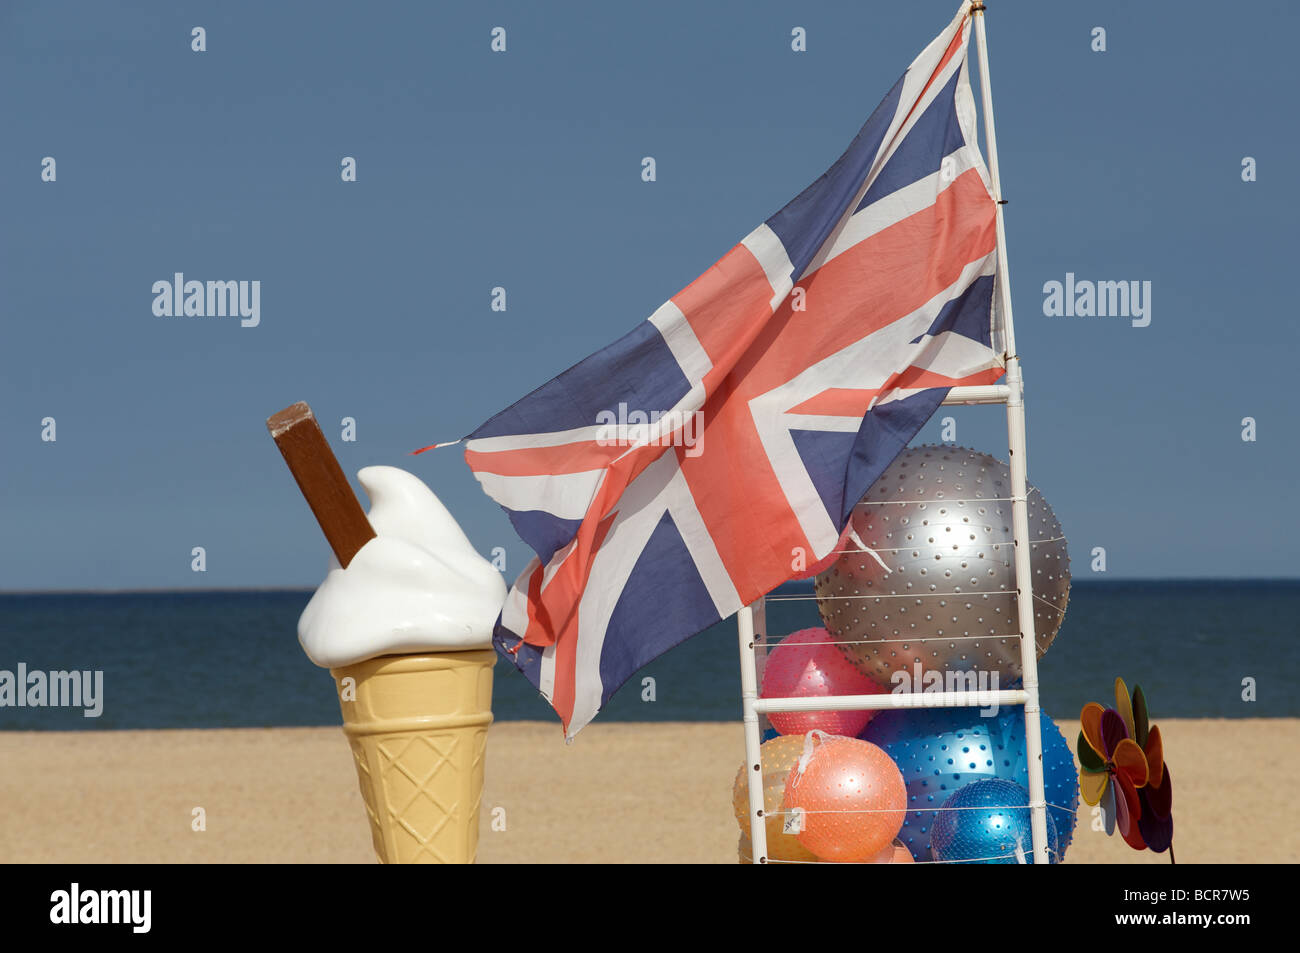 Stall selling ice creams and beach balls, Great Yarmouth, Norfolk, UK. - Stock Image